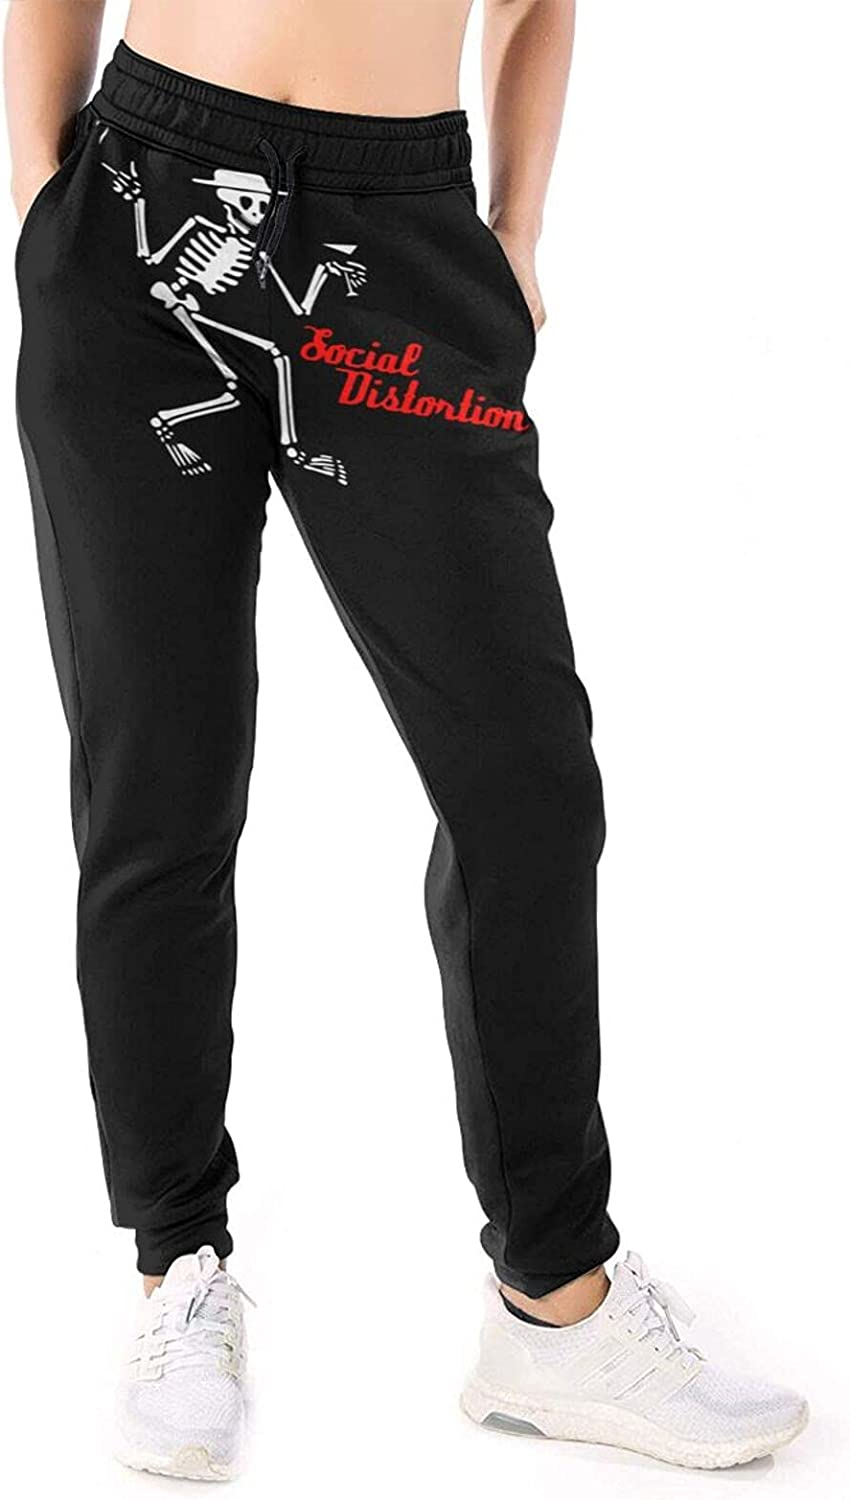 RDCLFJENQ Social Distortion Pants for Women's Sport Pull On Draw